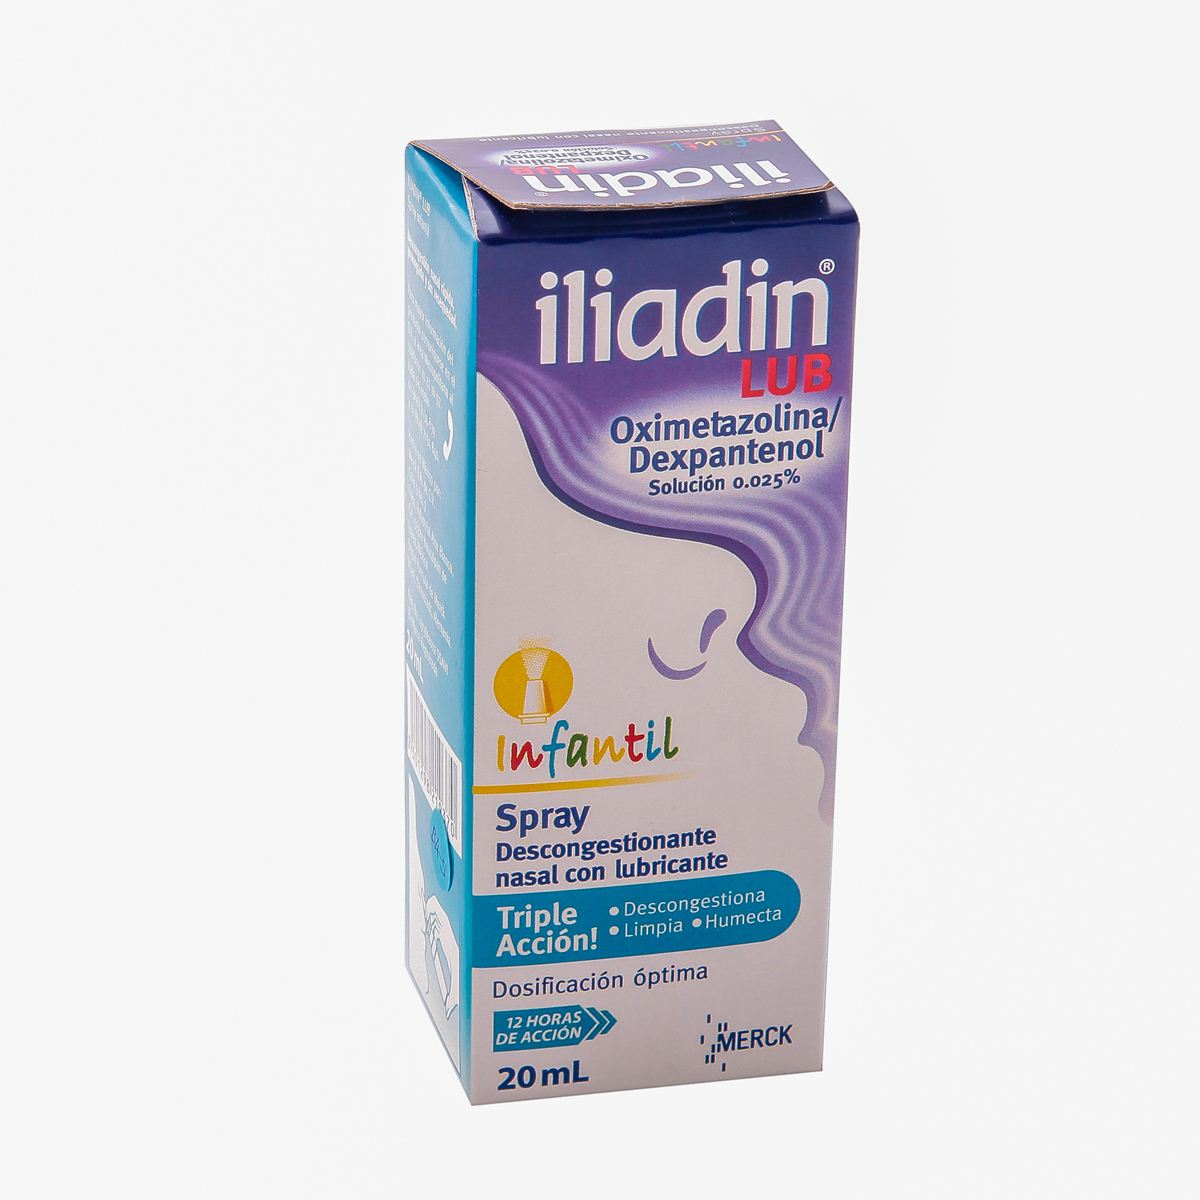 Iliadin lub spray 20ml inf  - Sanborns